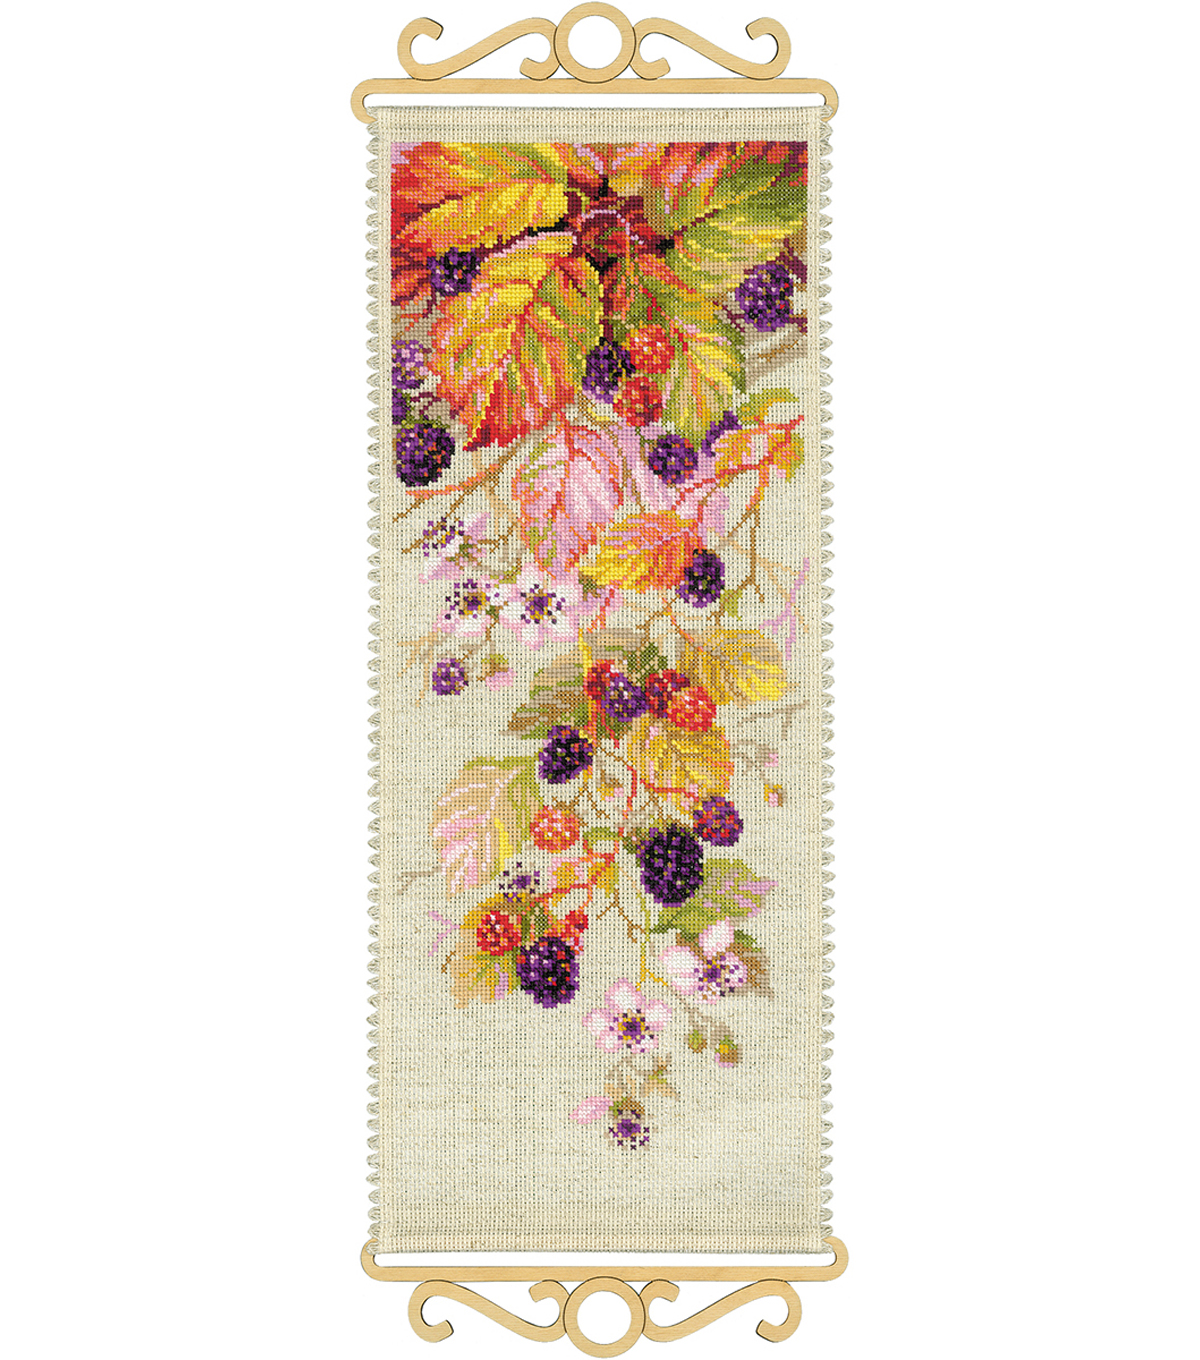 Blackberry Counted Cross Stitch Kit 14 Count